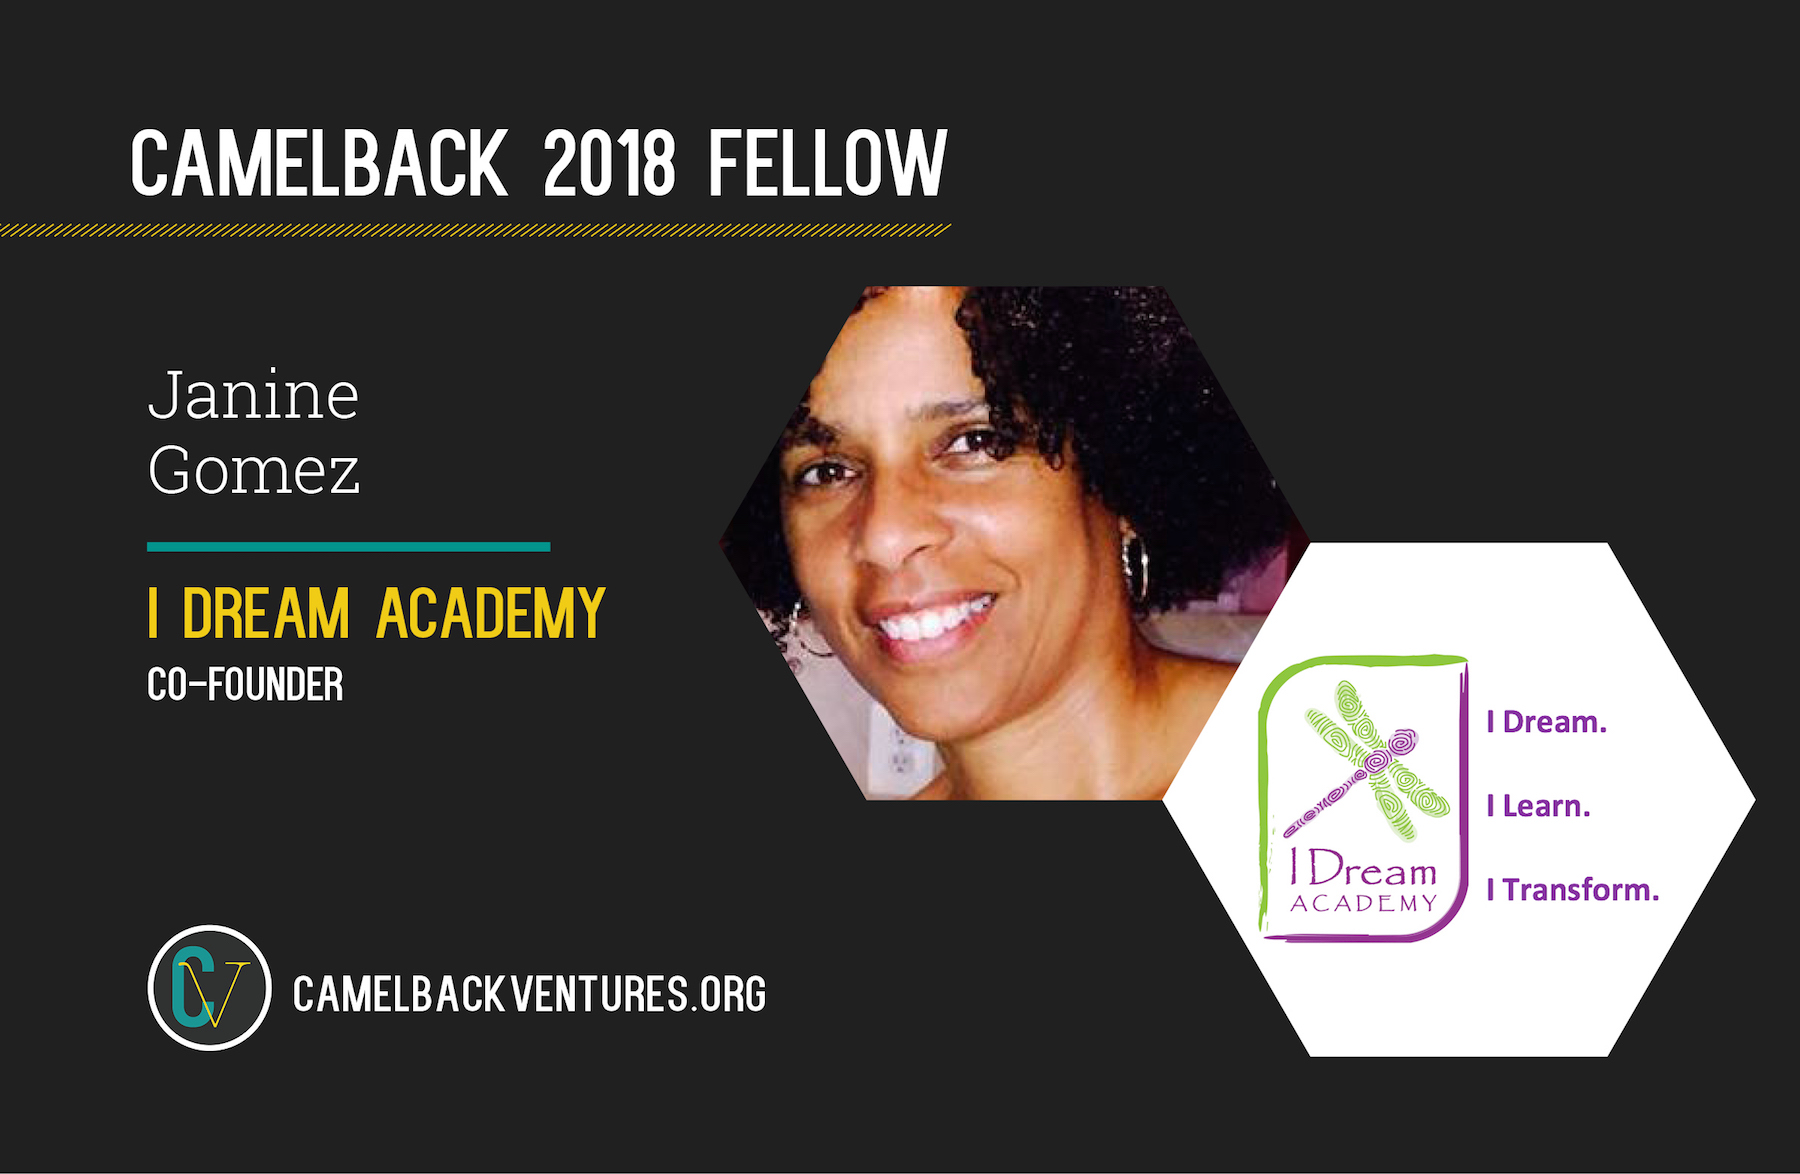 2018camelbackfellows_janine.jpg